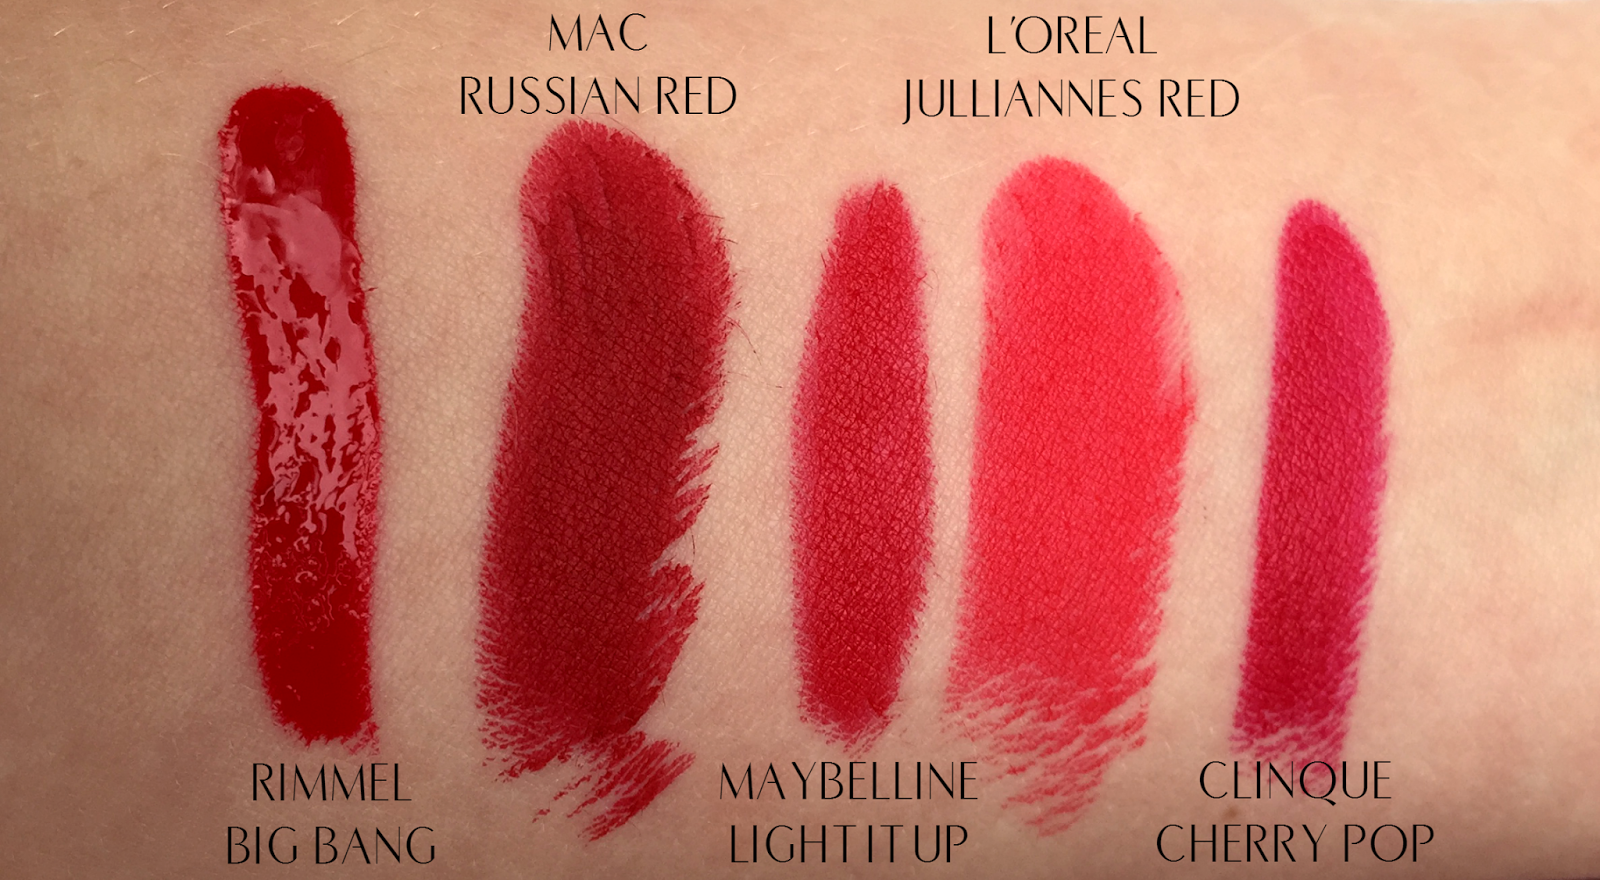 Top 5 Festive Red Lips For Christmas Clinique Cherry Pop Rimmel Big Bang Maybelline Light It Up MAC Russian Red L'Oreal Jullianne's Red Swatches